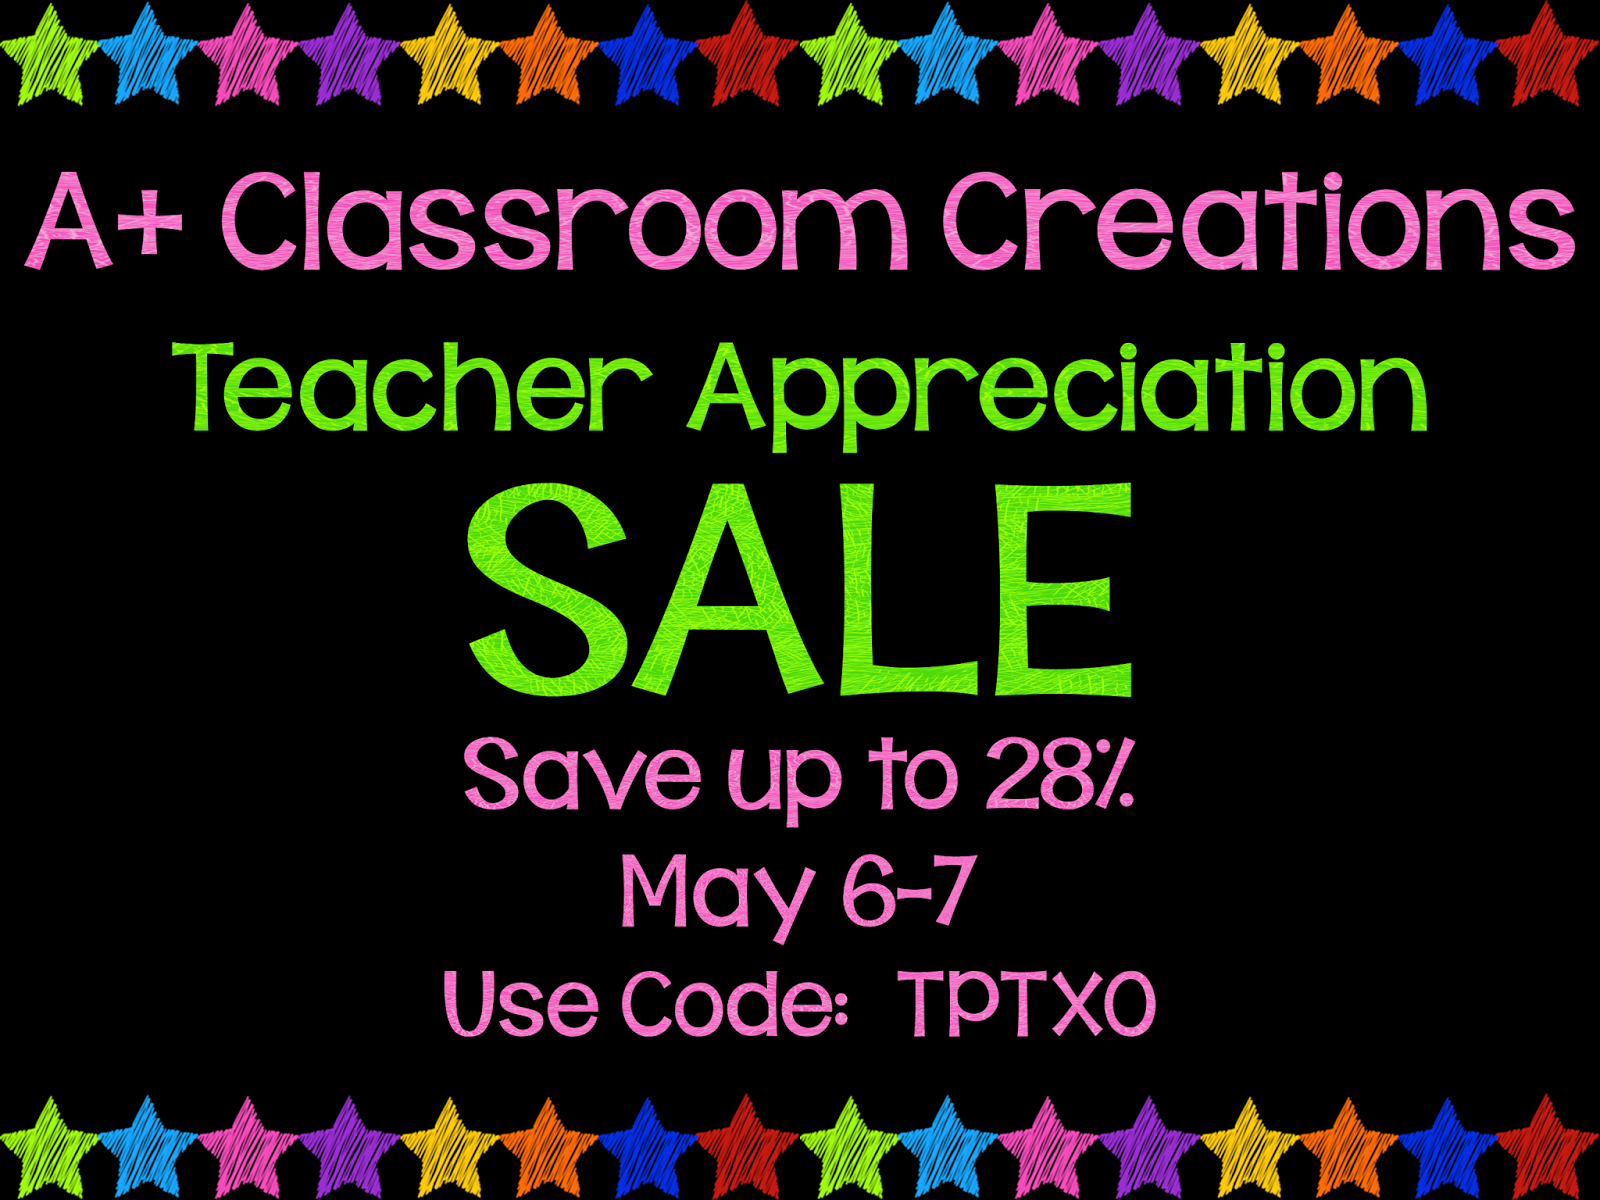 http://www.teacherspayteachers.com/Store/A-Plus-Classroom-Creations